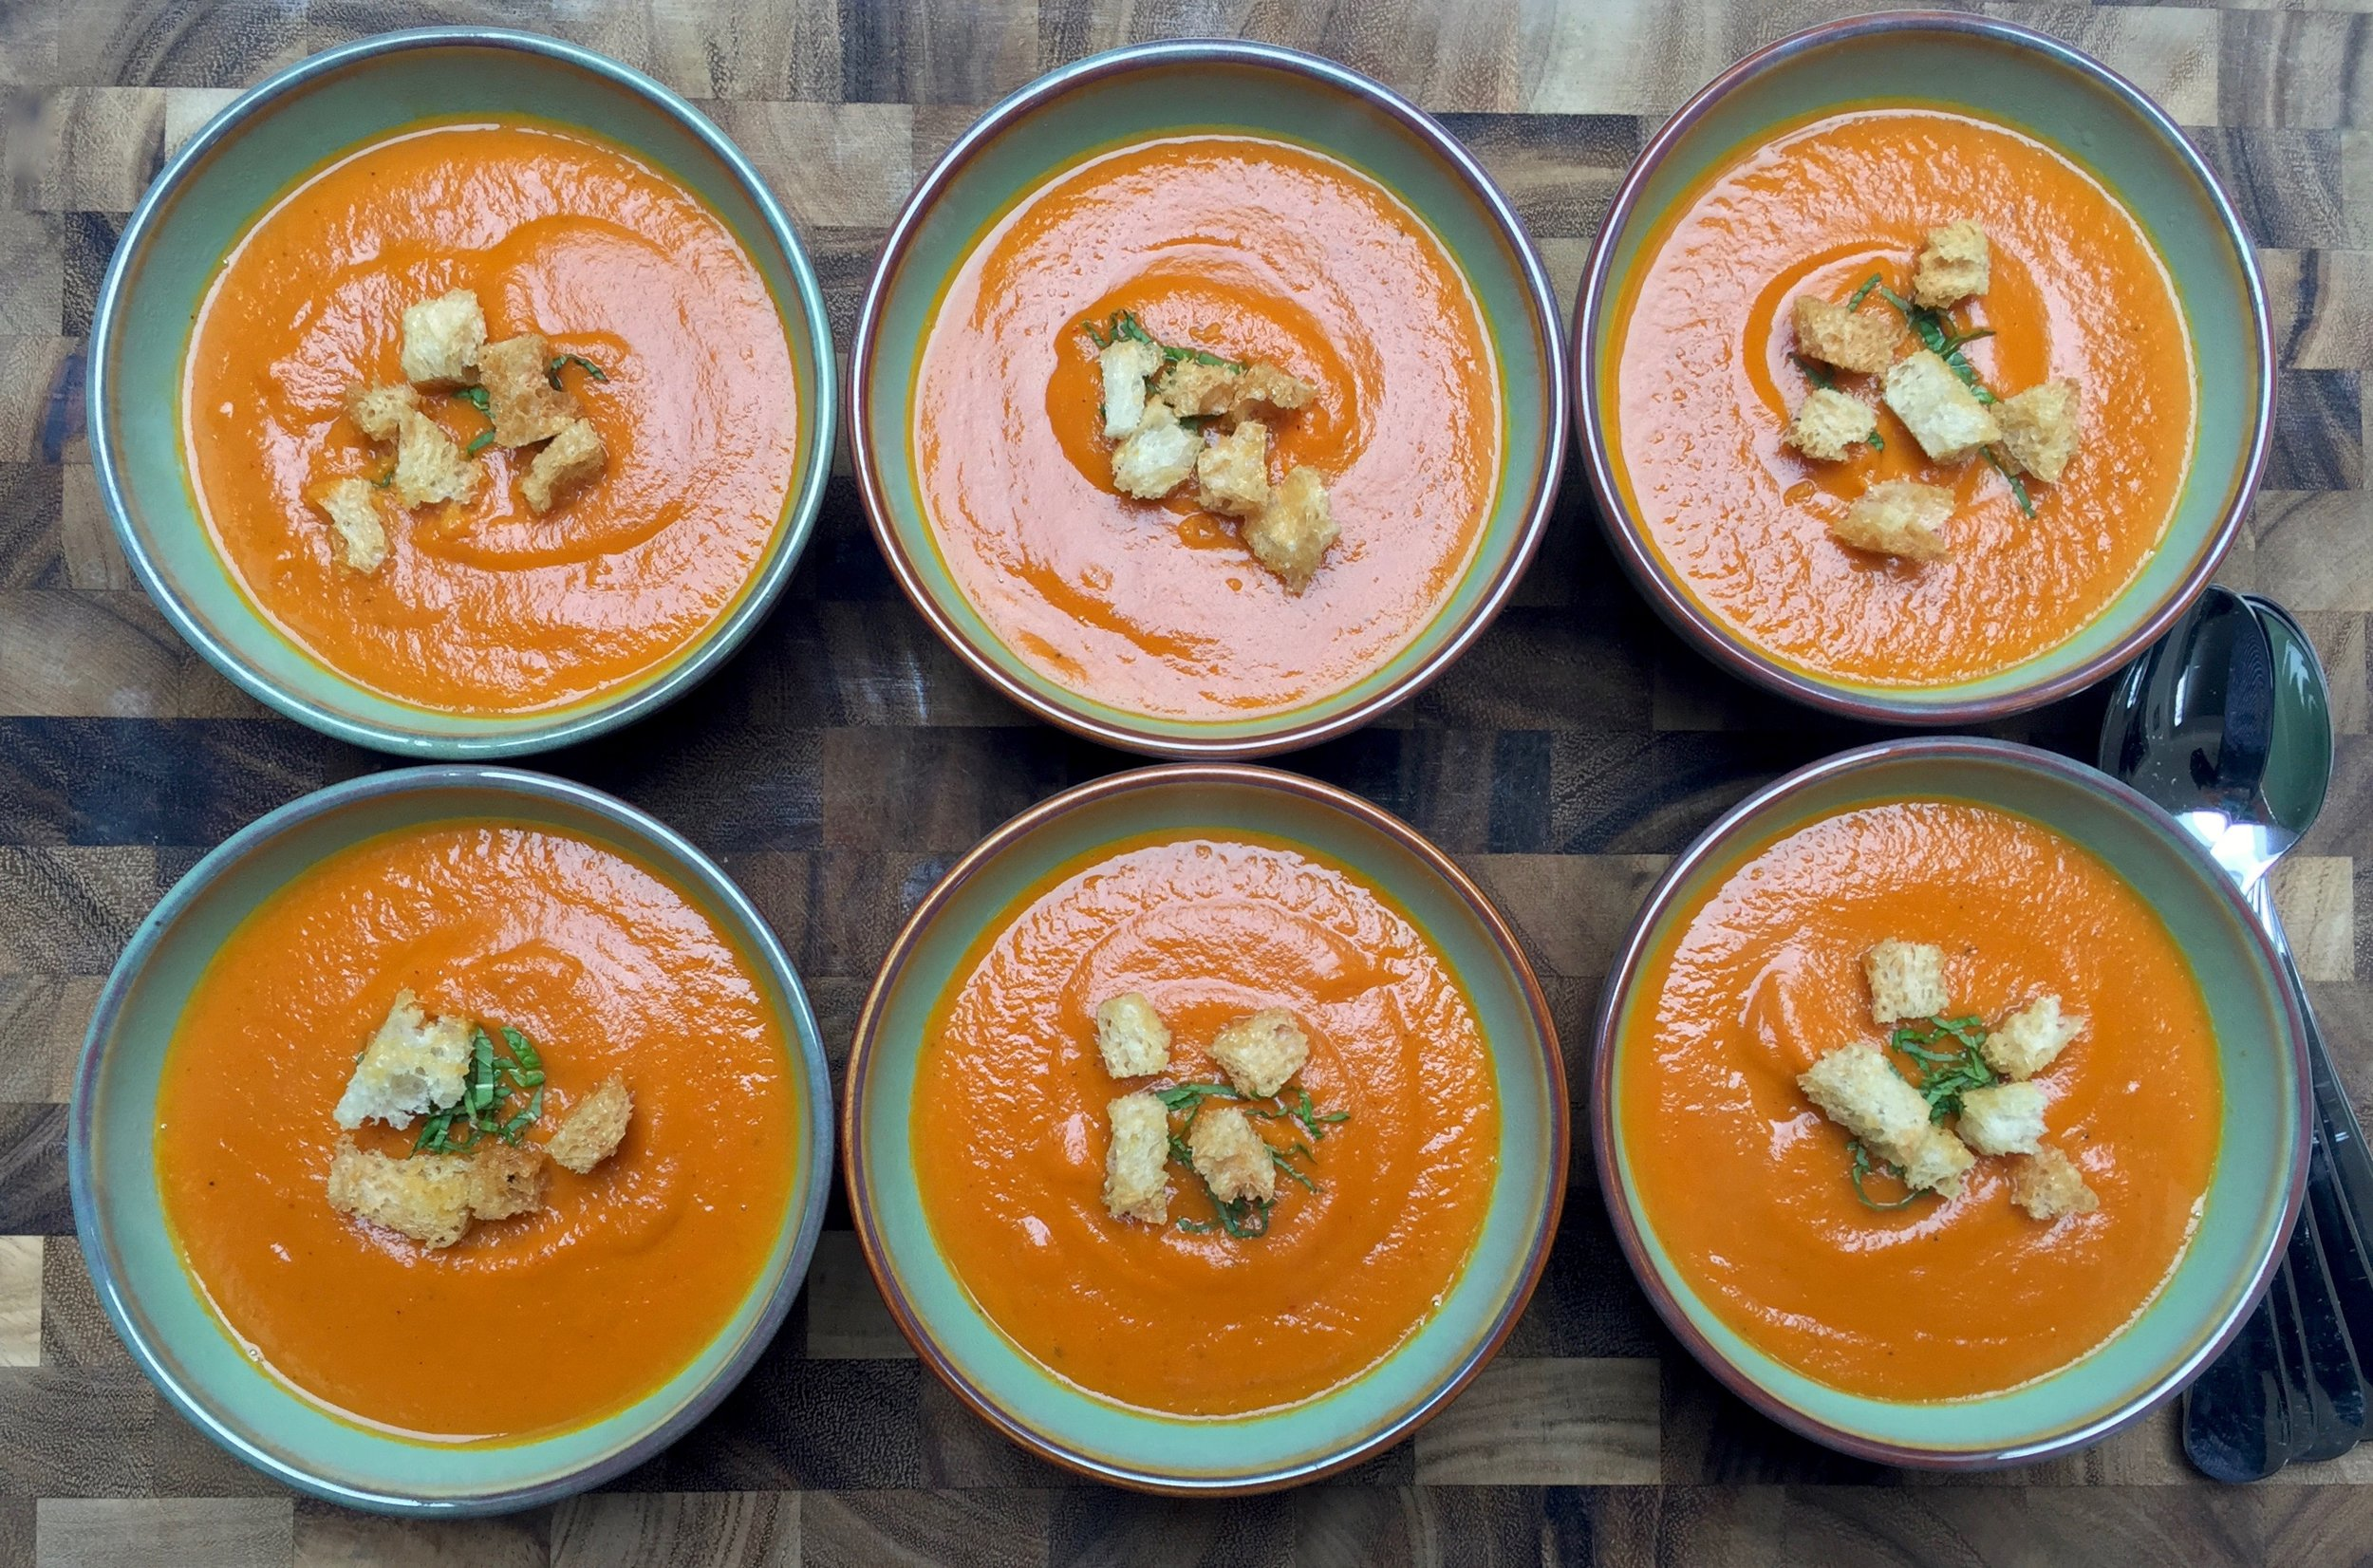 Roasted Carrot-Ginger Soup garnished with croutons and mint is ready to pass around...